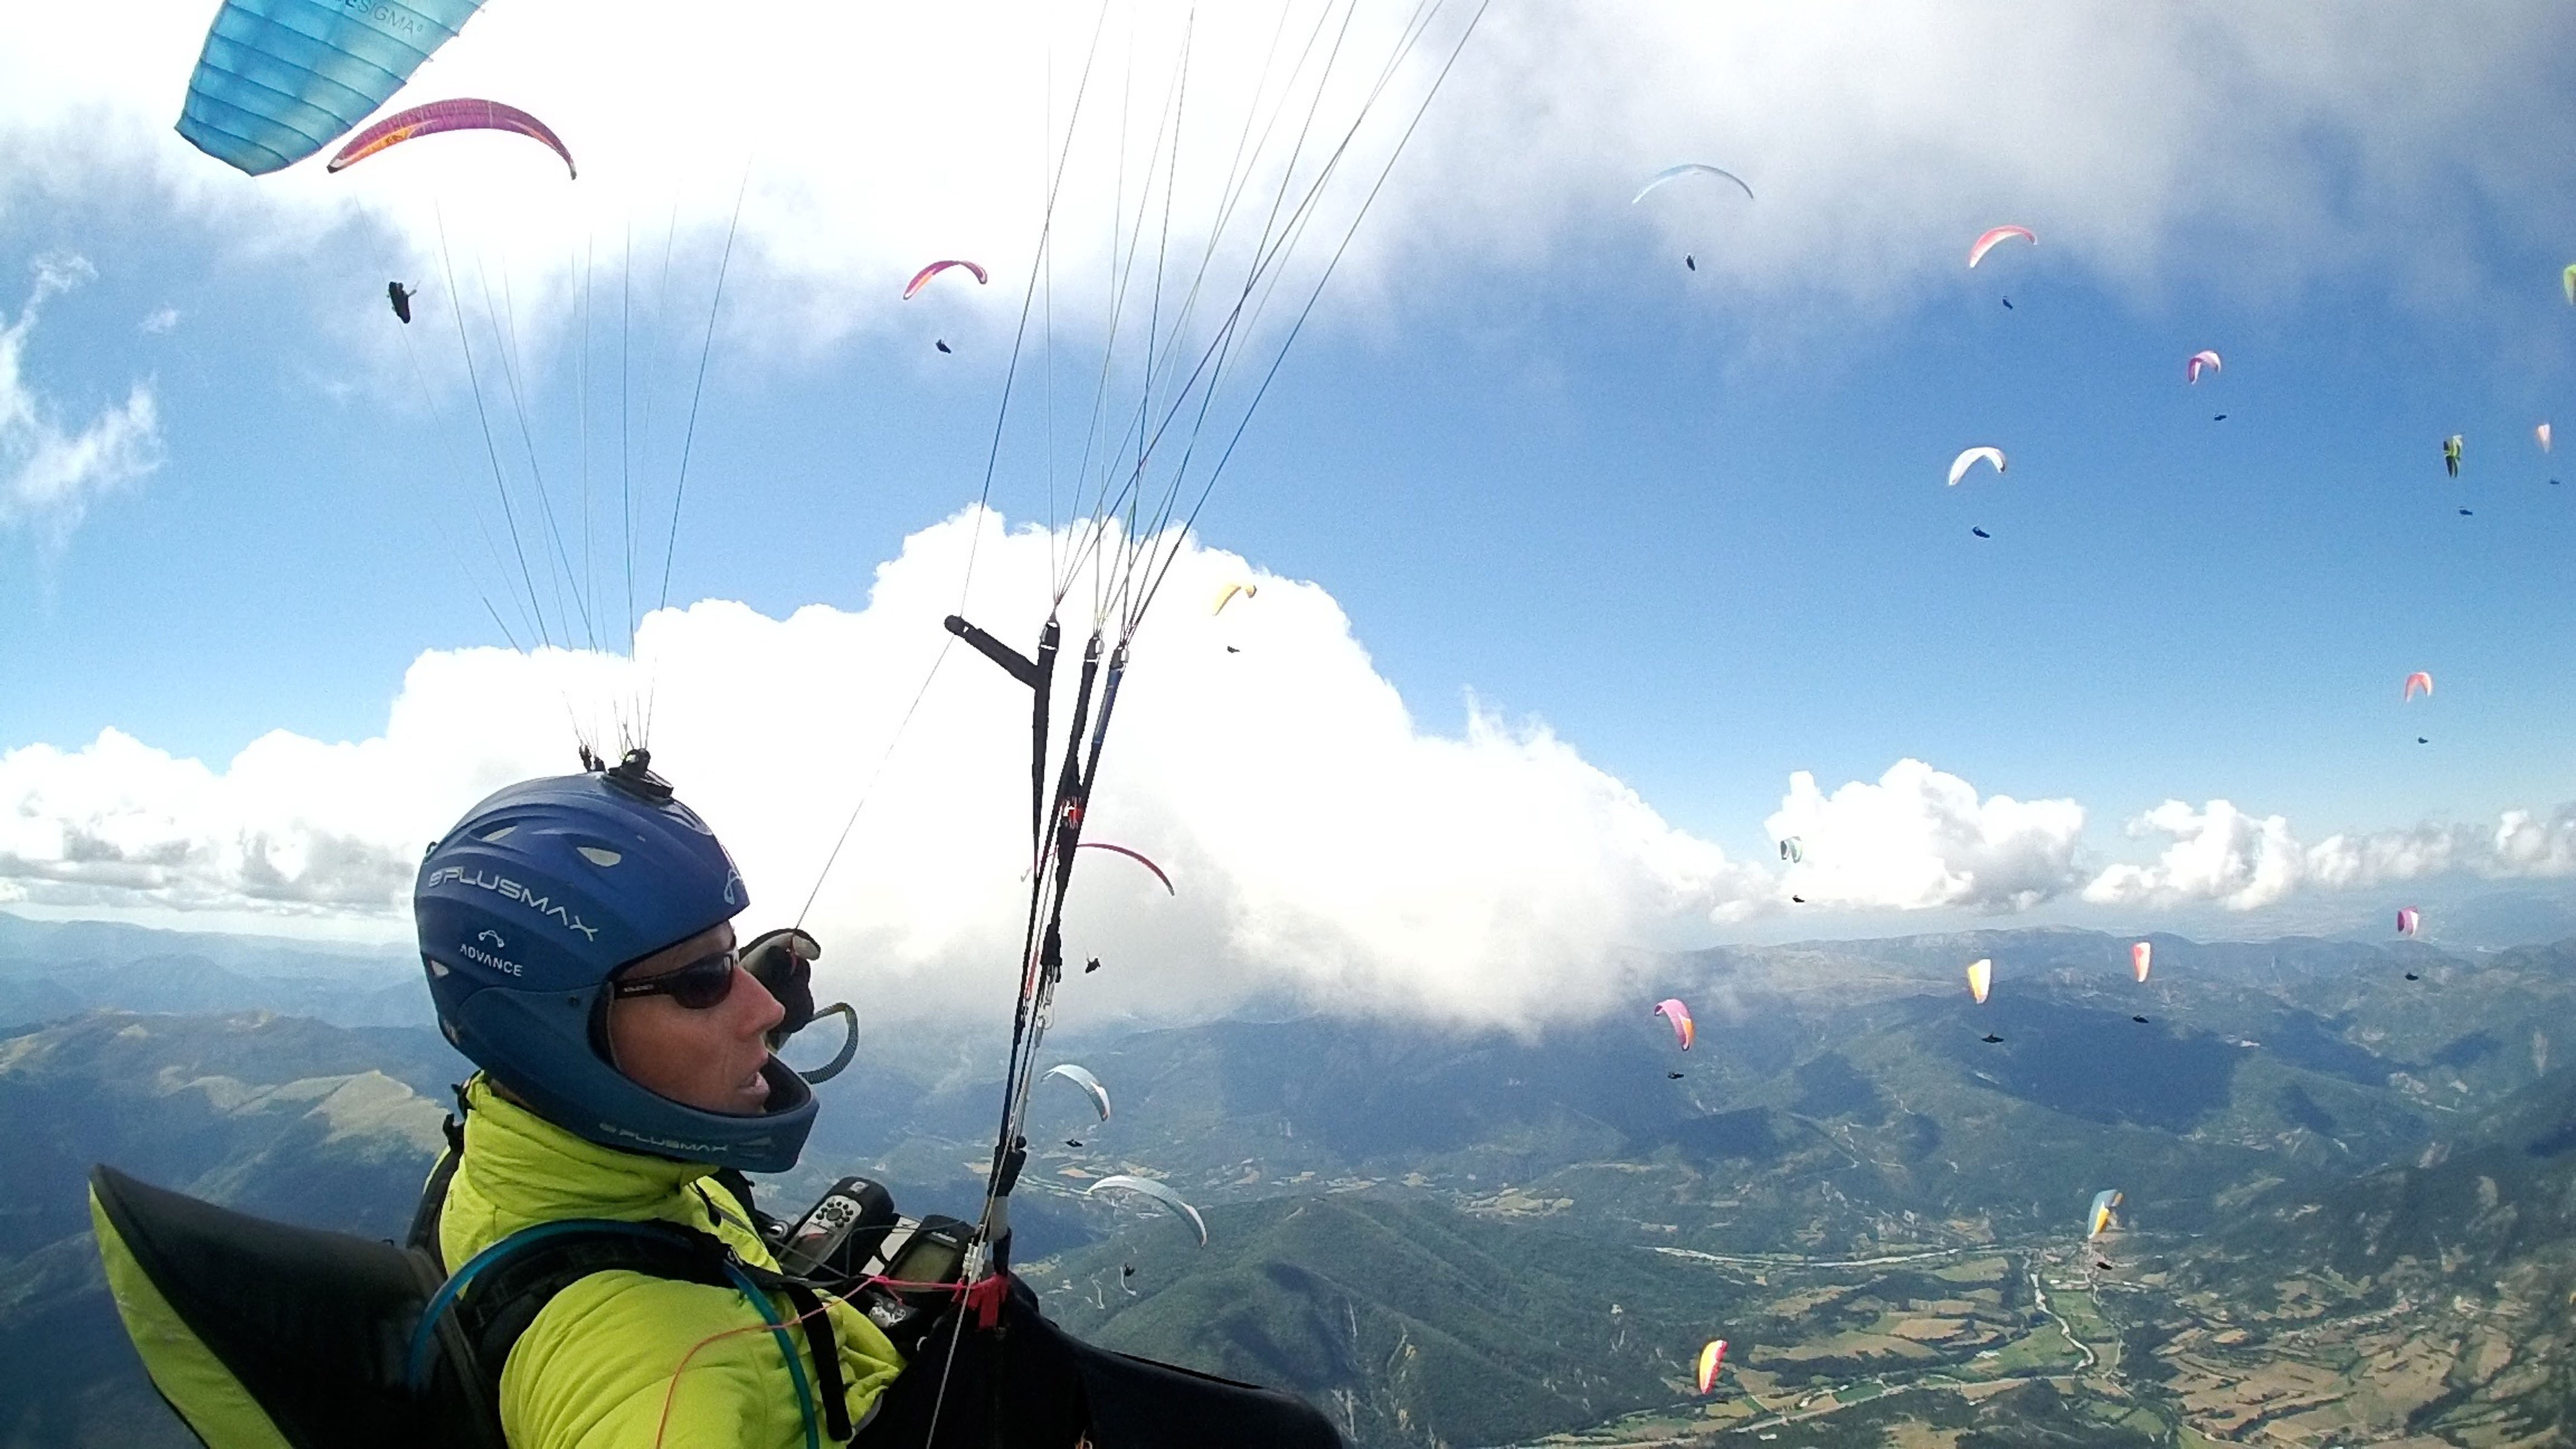 British Paraglider Swoops Through The Skies To Capture